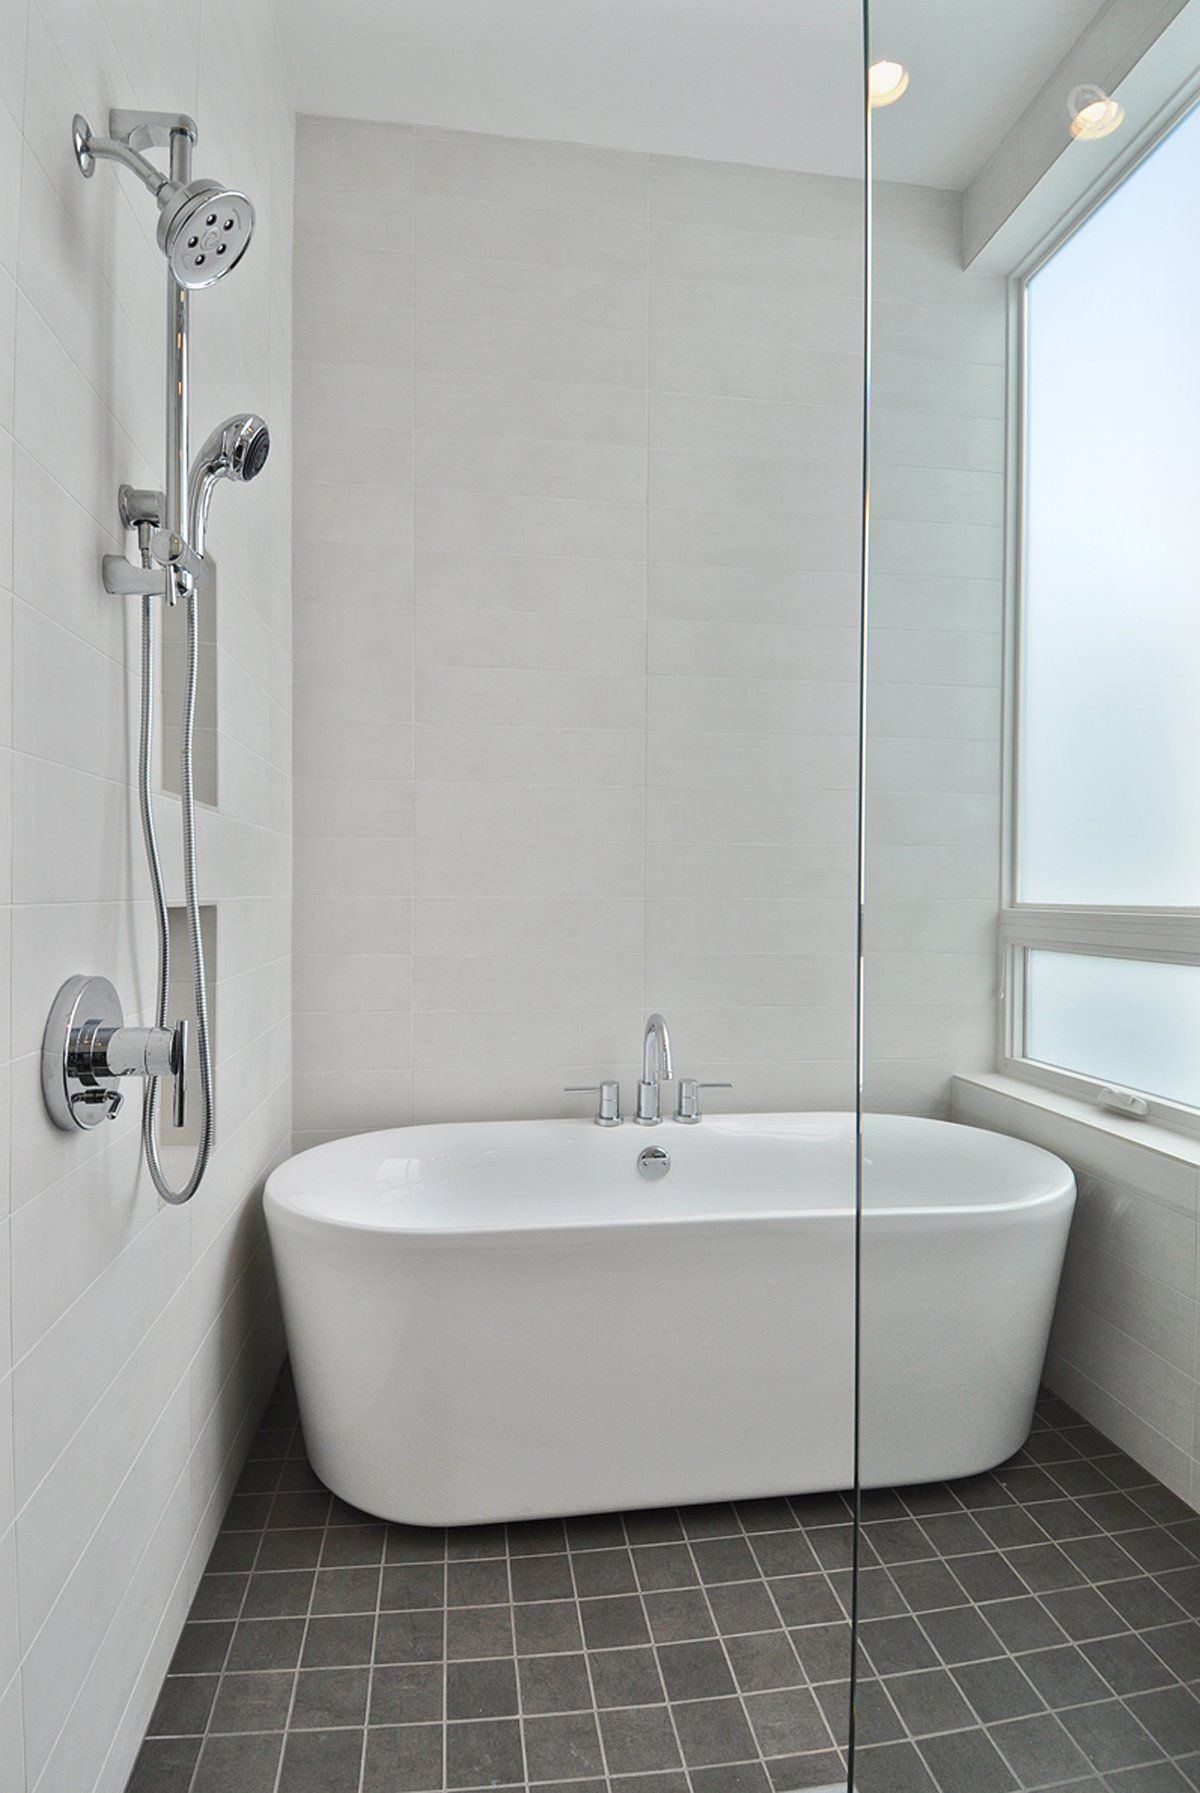 Complete Your Charming Bathroom With Freestanding Tubs Ideas: White ...